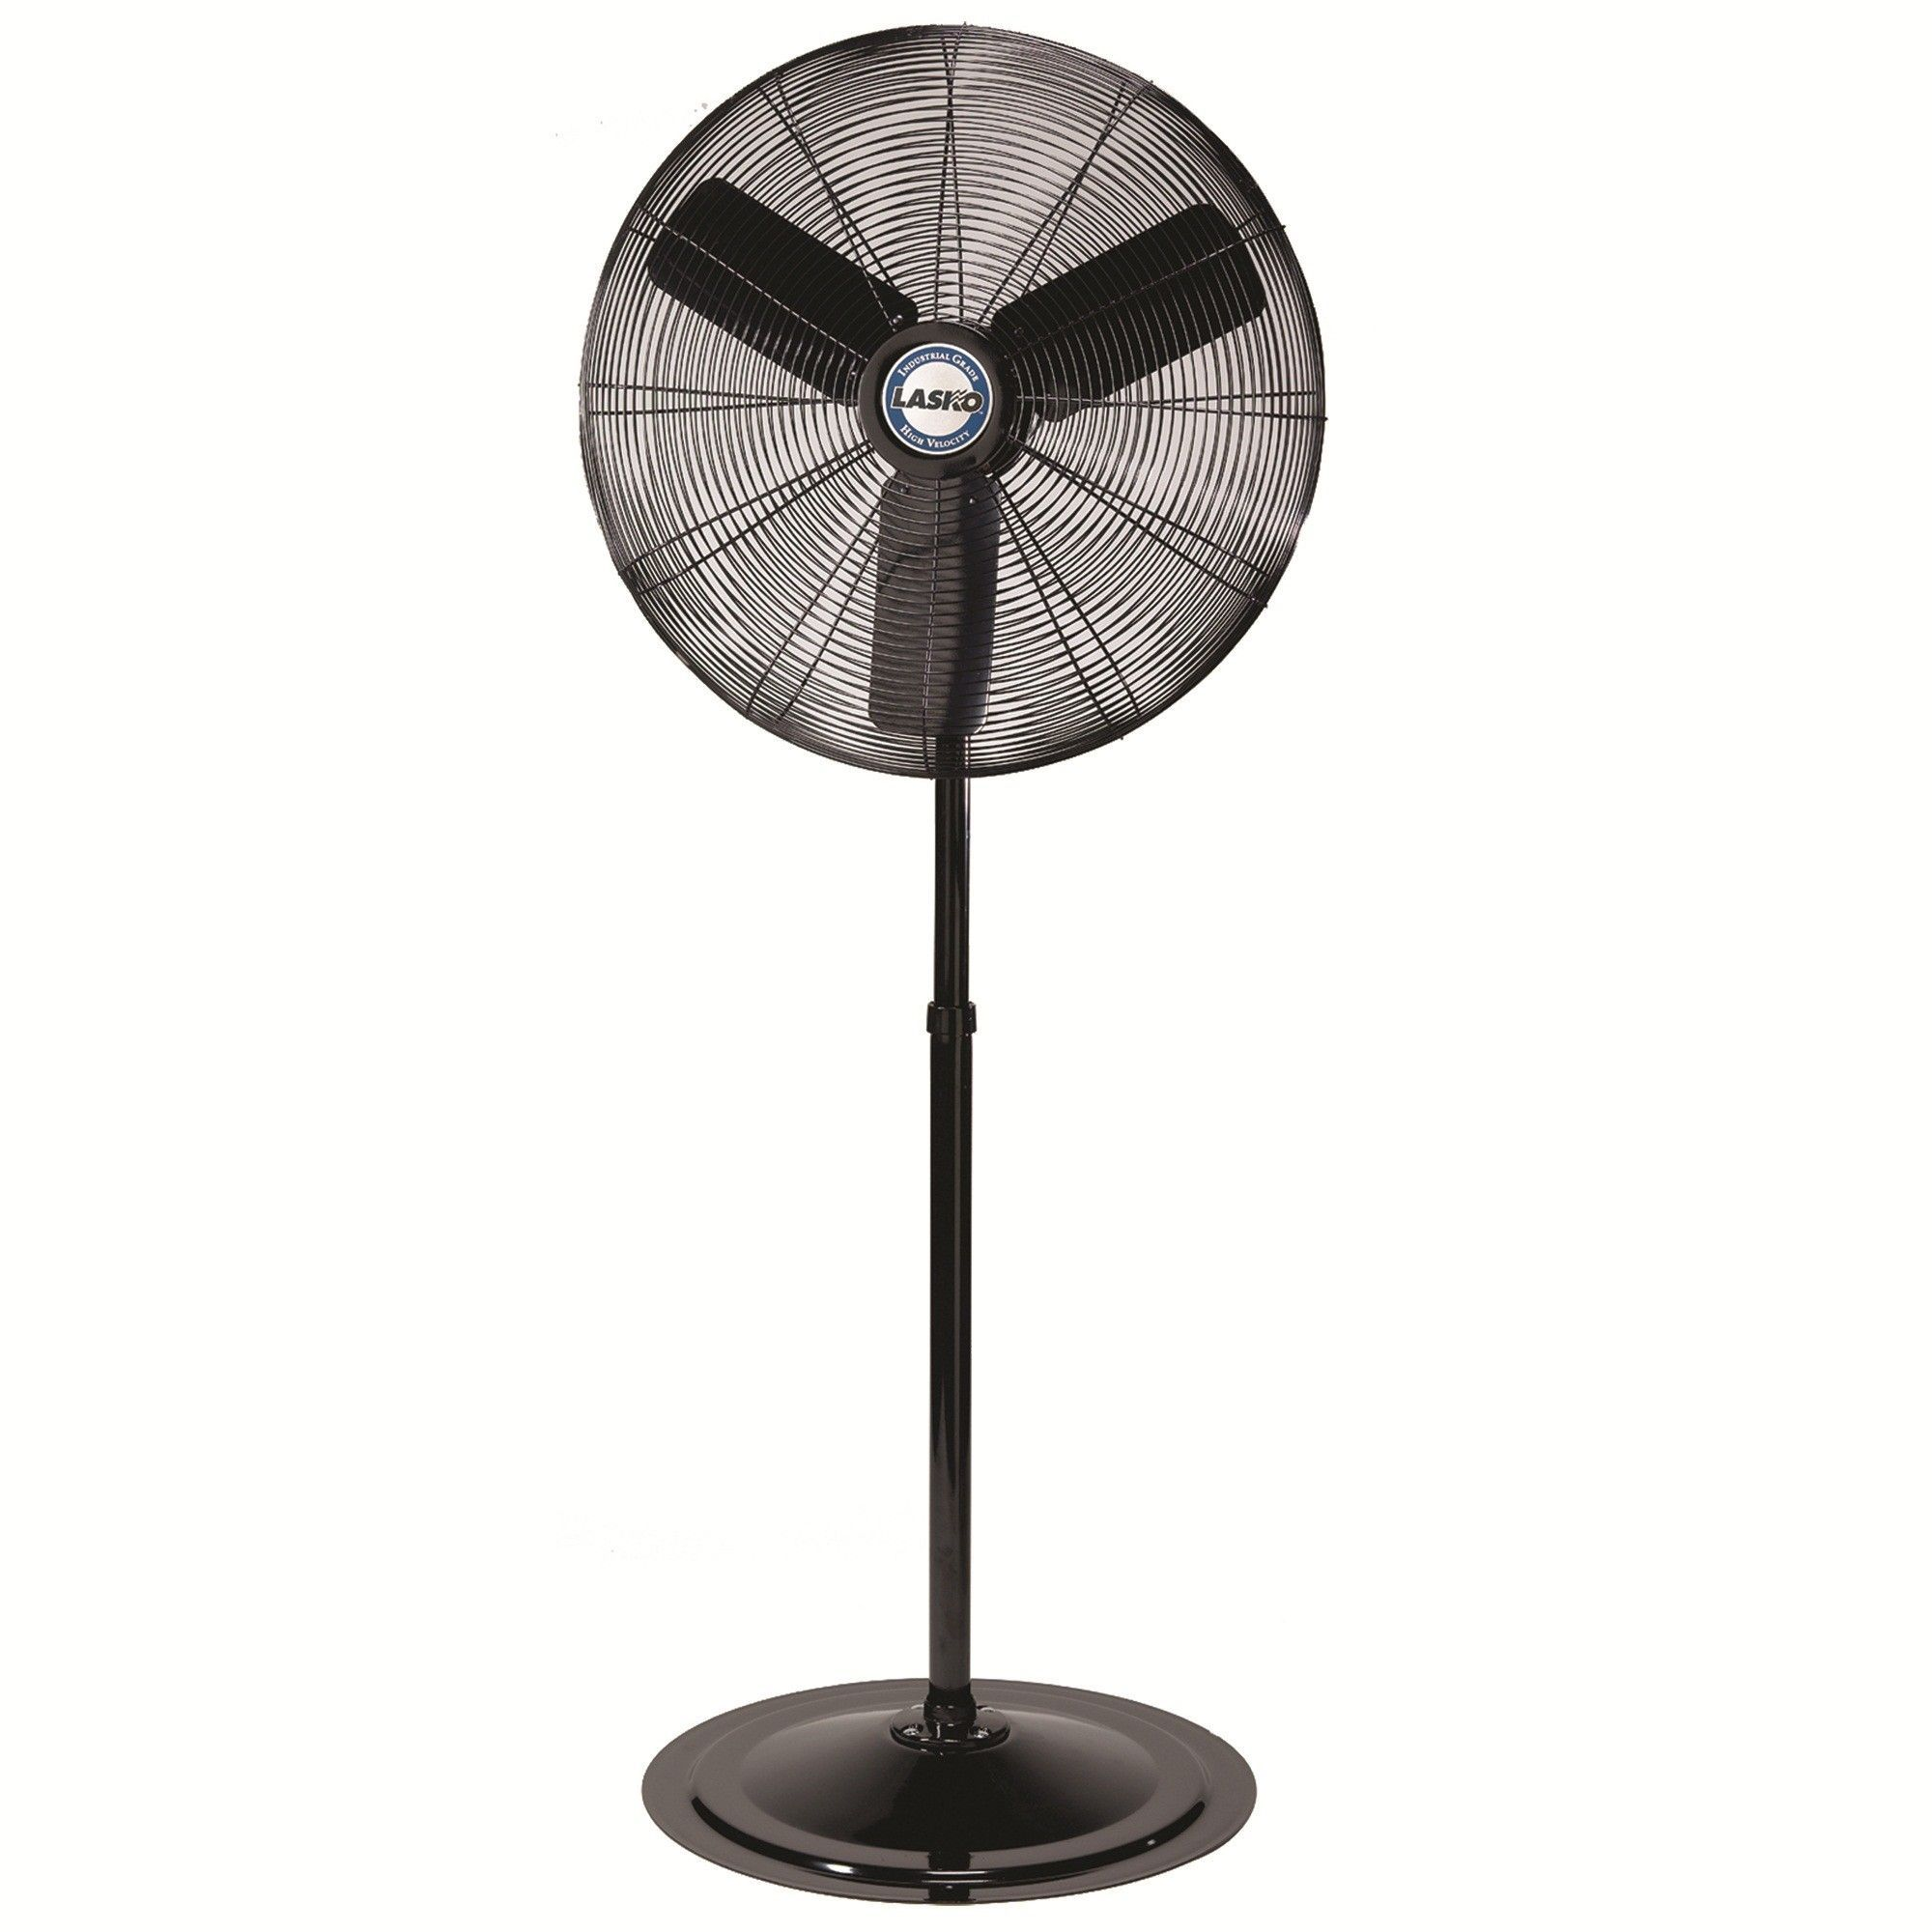 commercial in fans fan height adjustable gray powder oscillating p coating electric pedestal